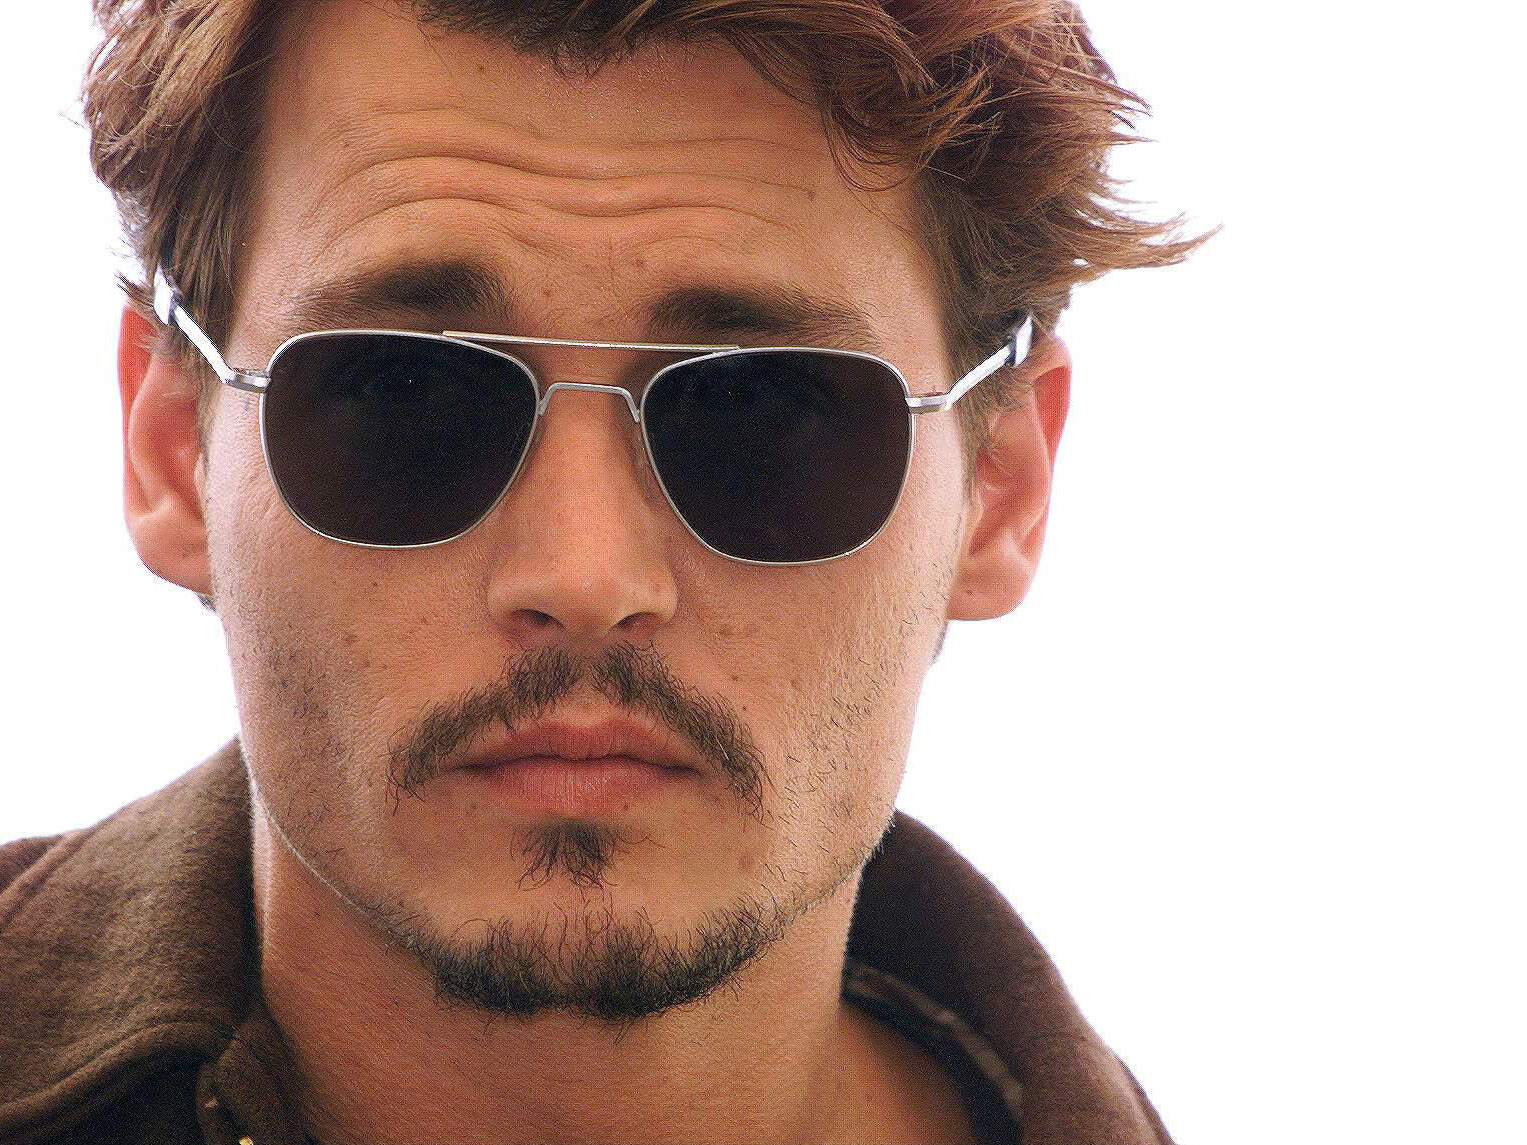 Johnny Depp facts: Little known facts about the mysterious ... Johnny Depp